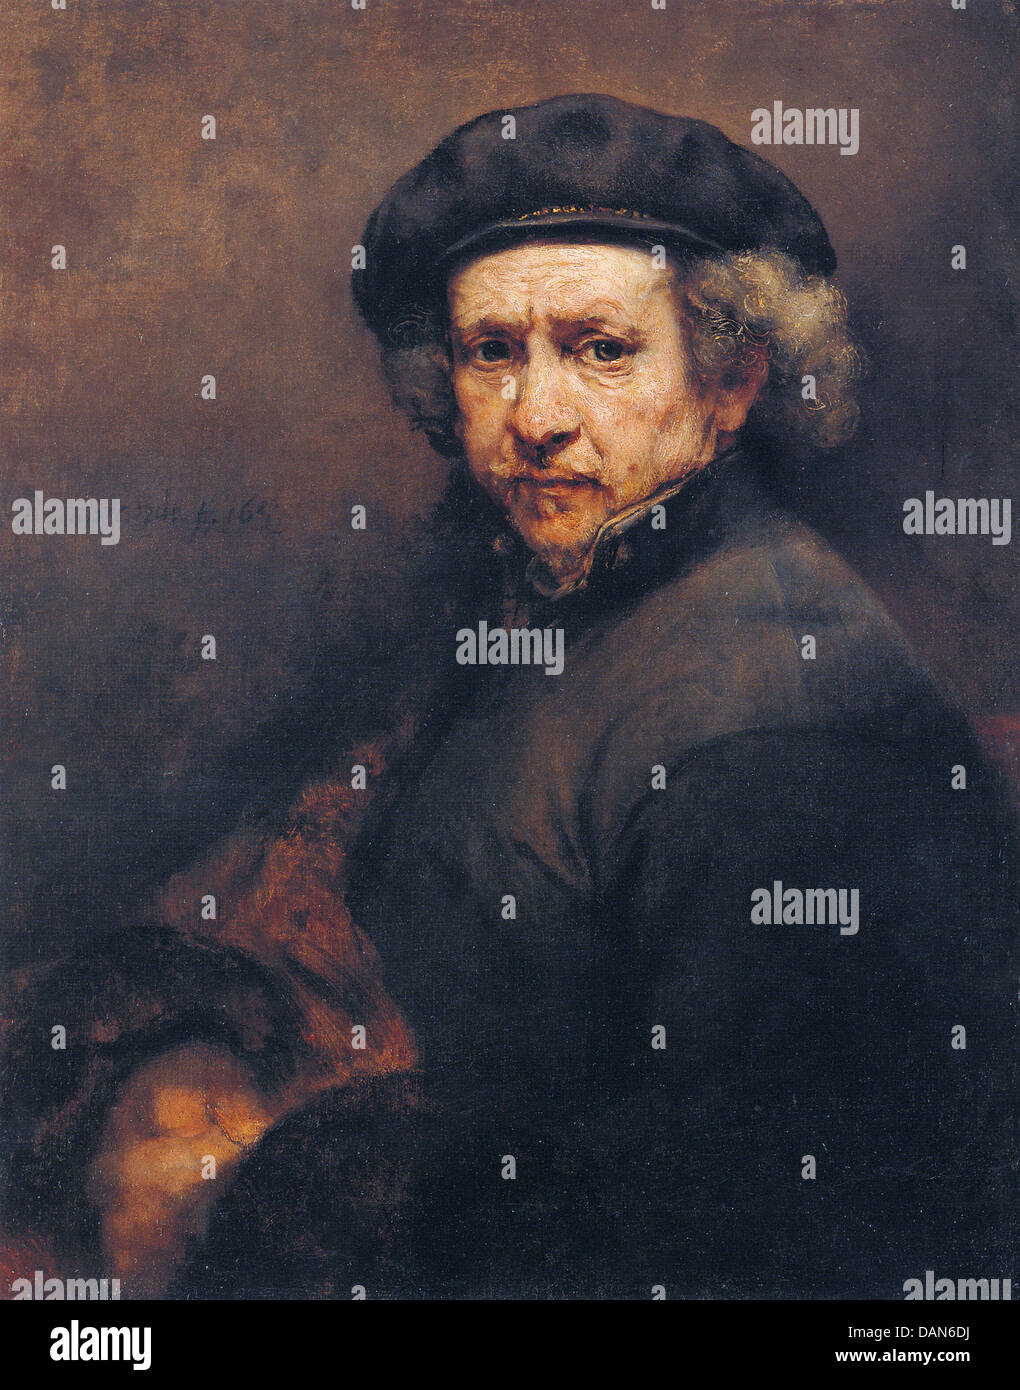 REMBRANDT (1606-1669) self portrait of the Dutch painter in 1659 - Stock Image